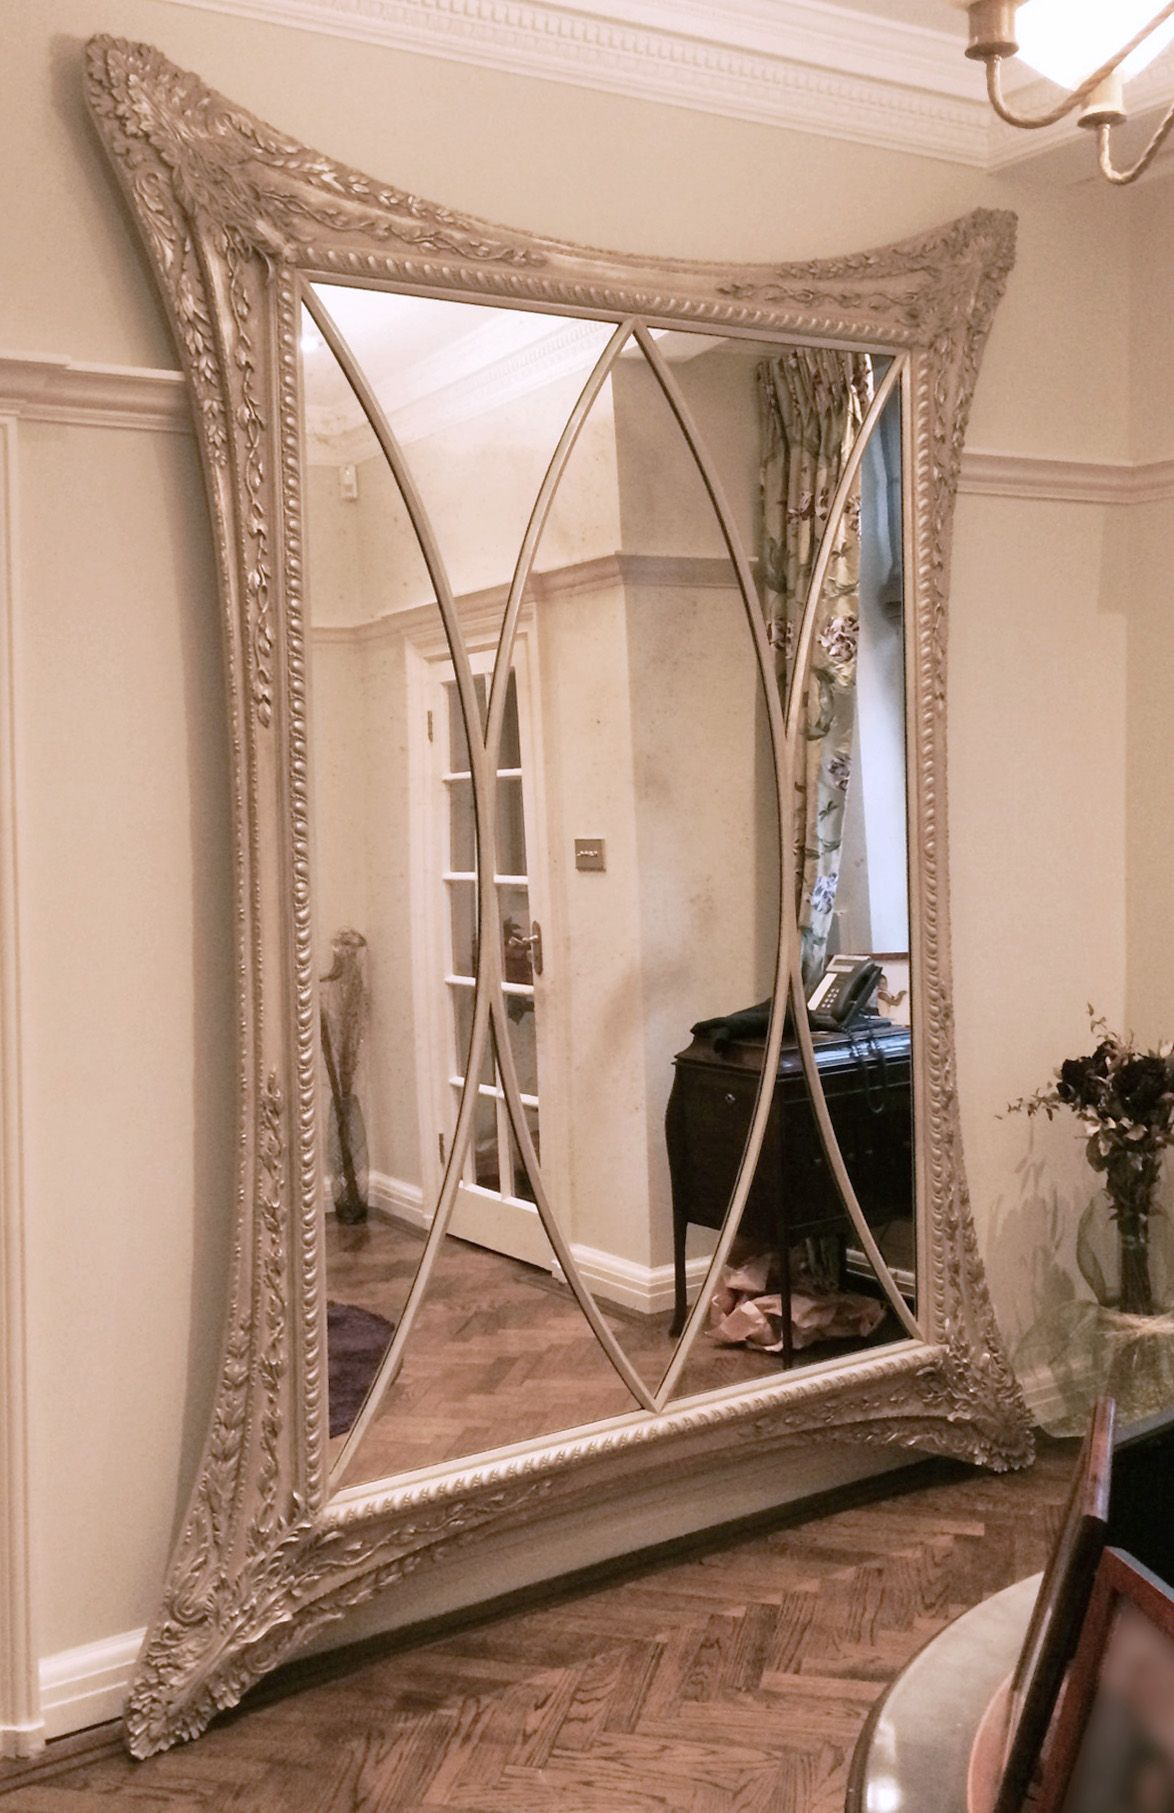 9Ft X 6Ft Ornate Waisted Mirror In Soft Silver Leaf